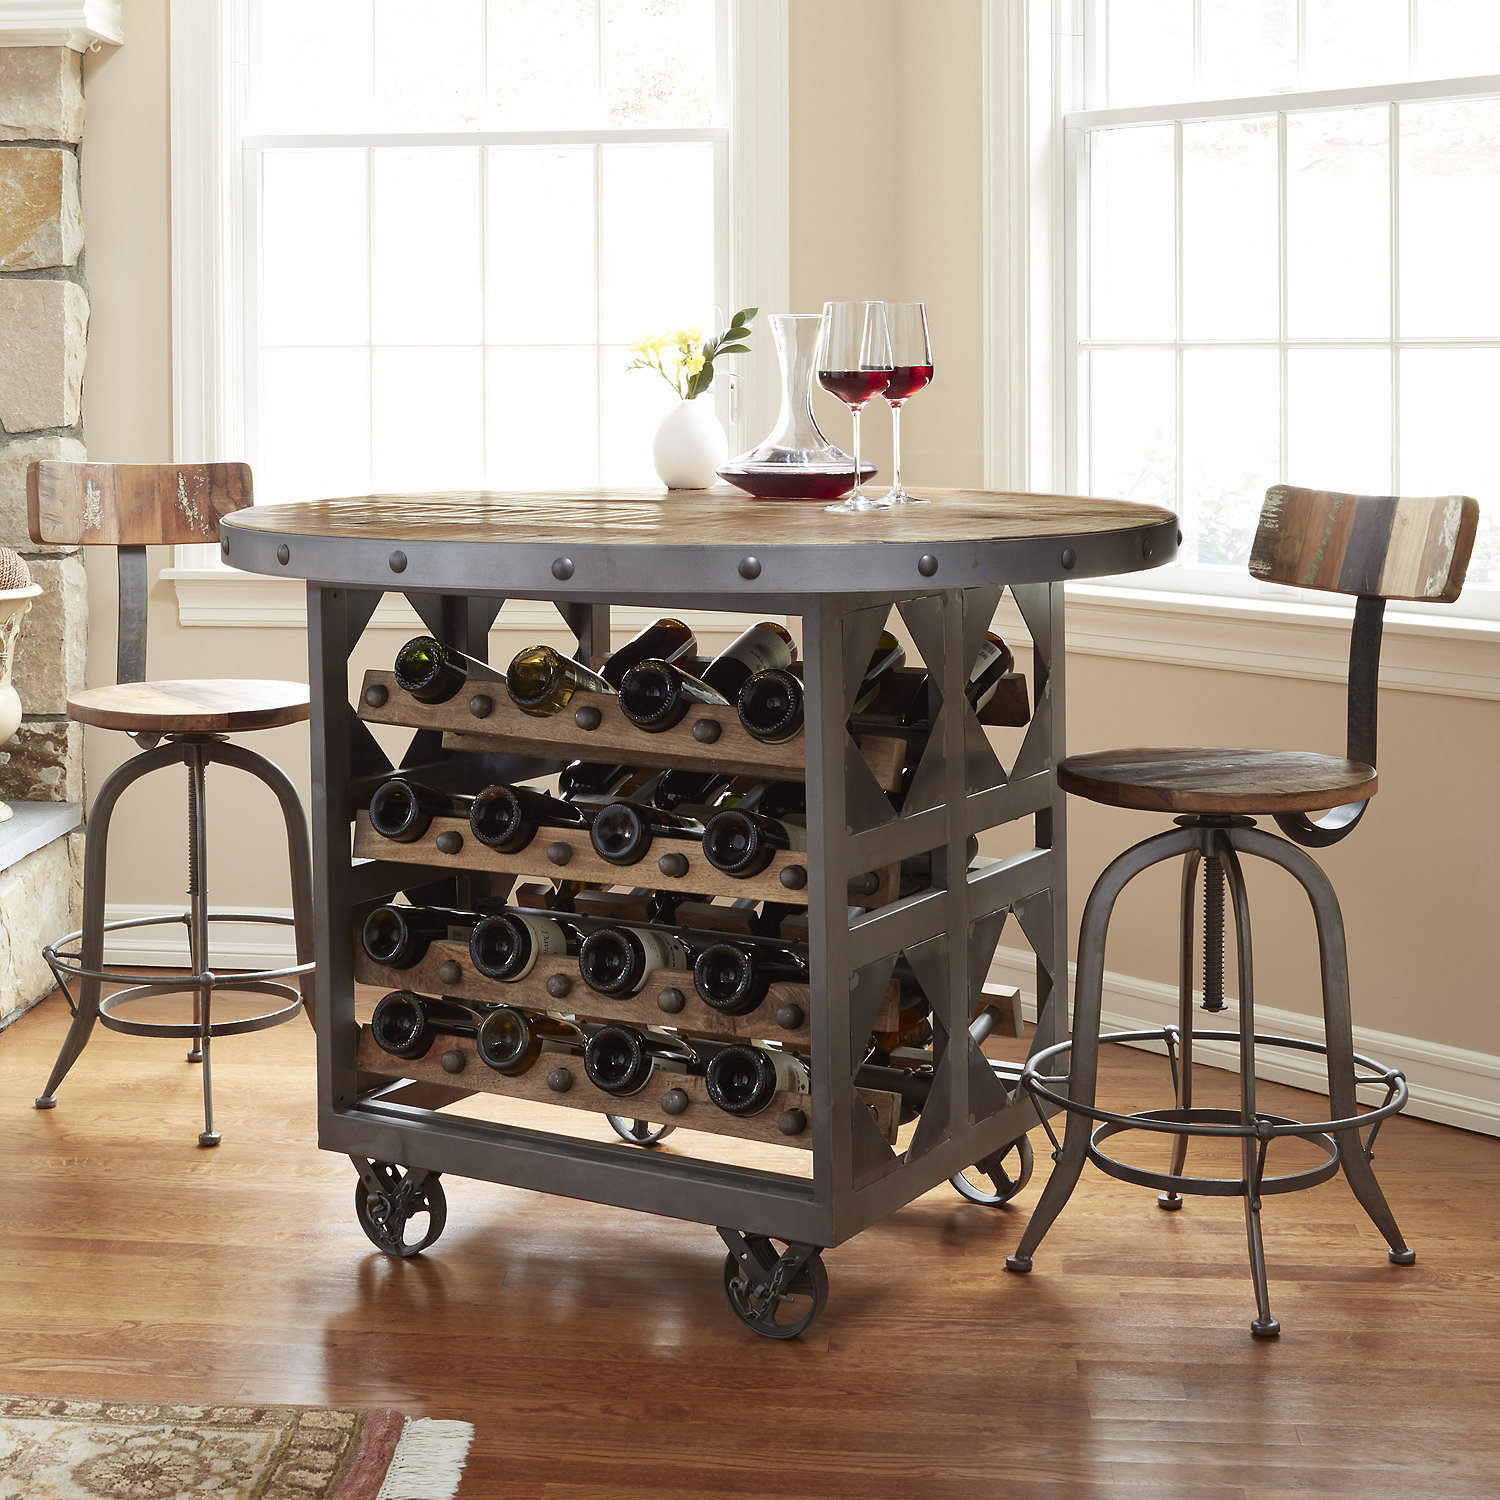 Repurposed Industrial Wine Storage Pub Table with 2 Stools Wine